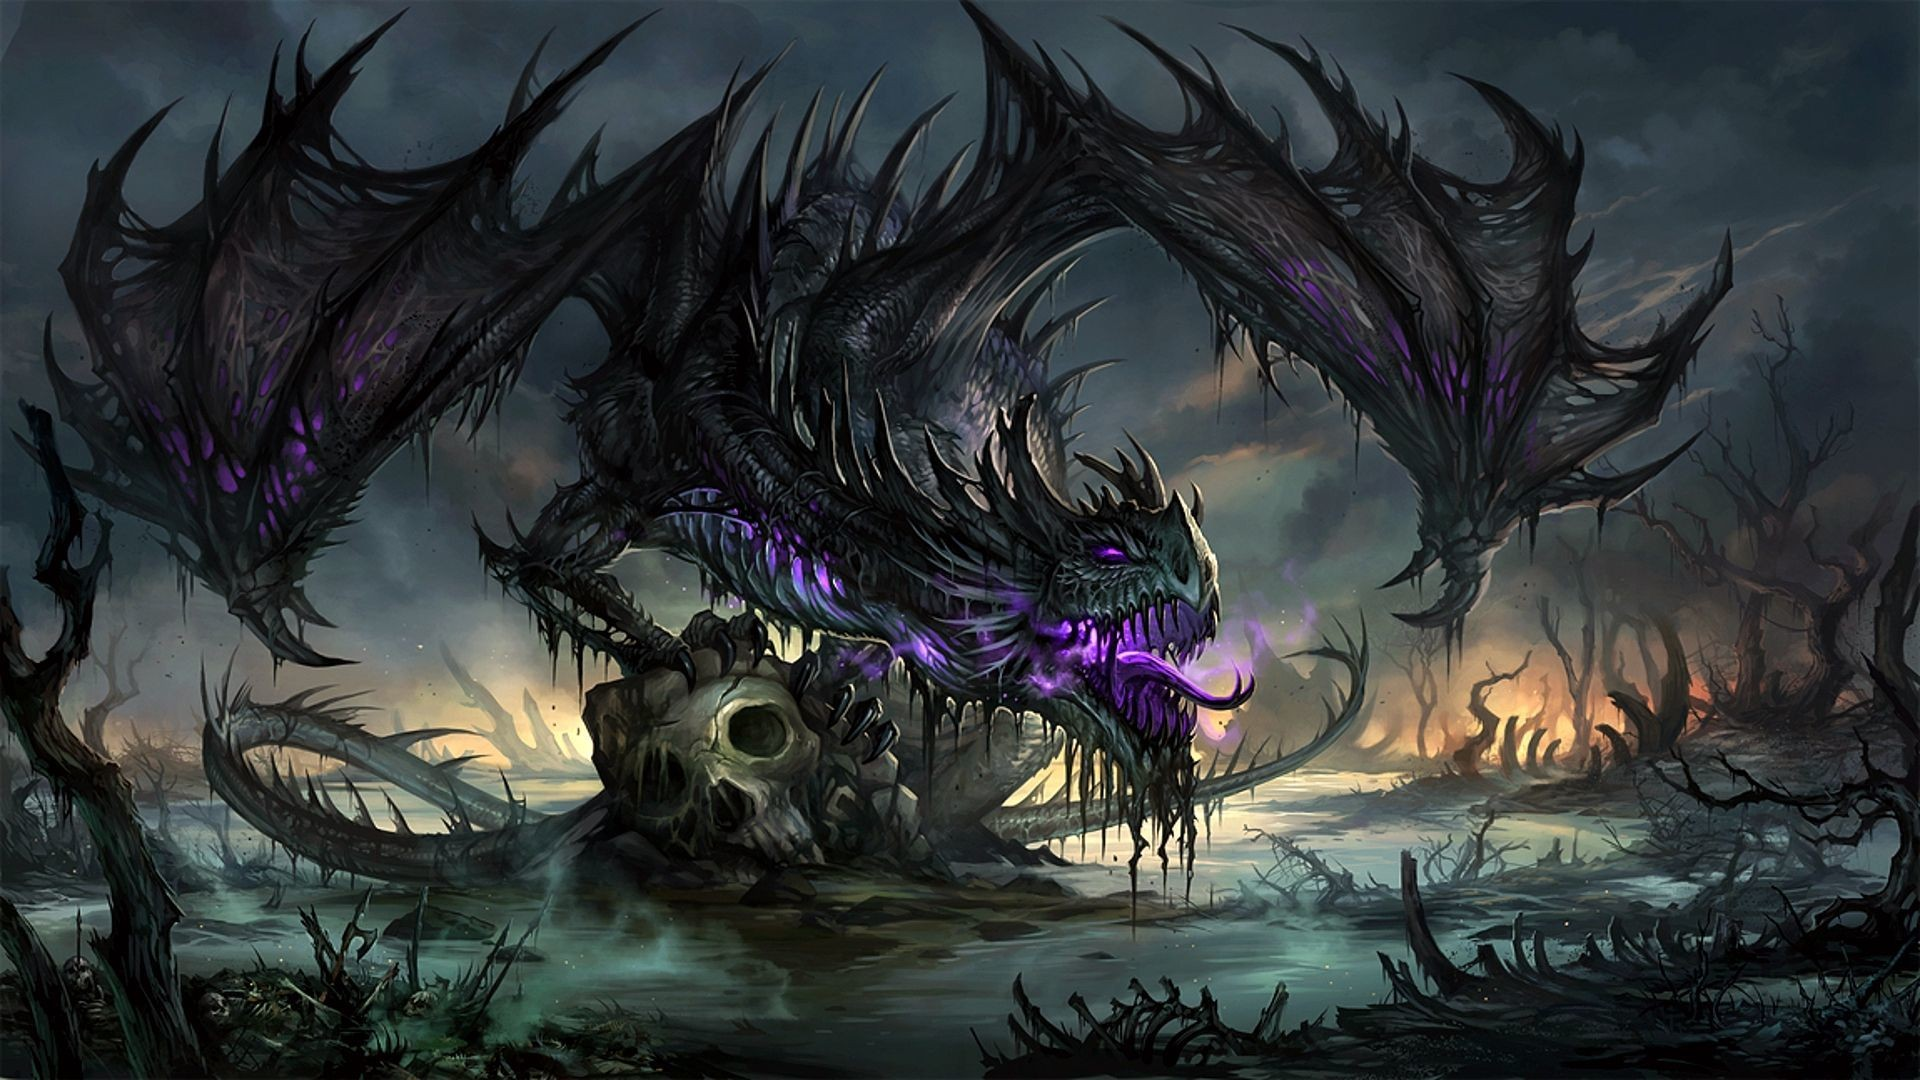 dragon wallpaper 1920x1080 ·① download free cool backgrounds for